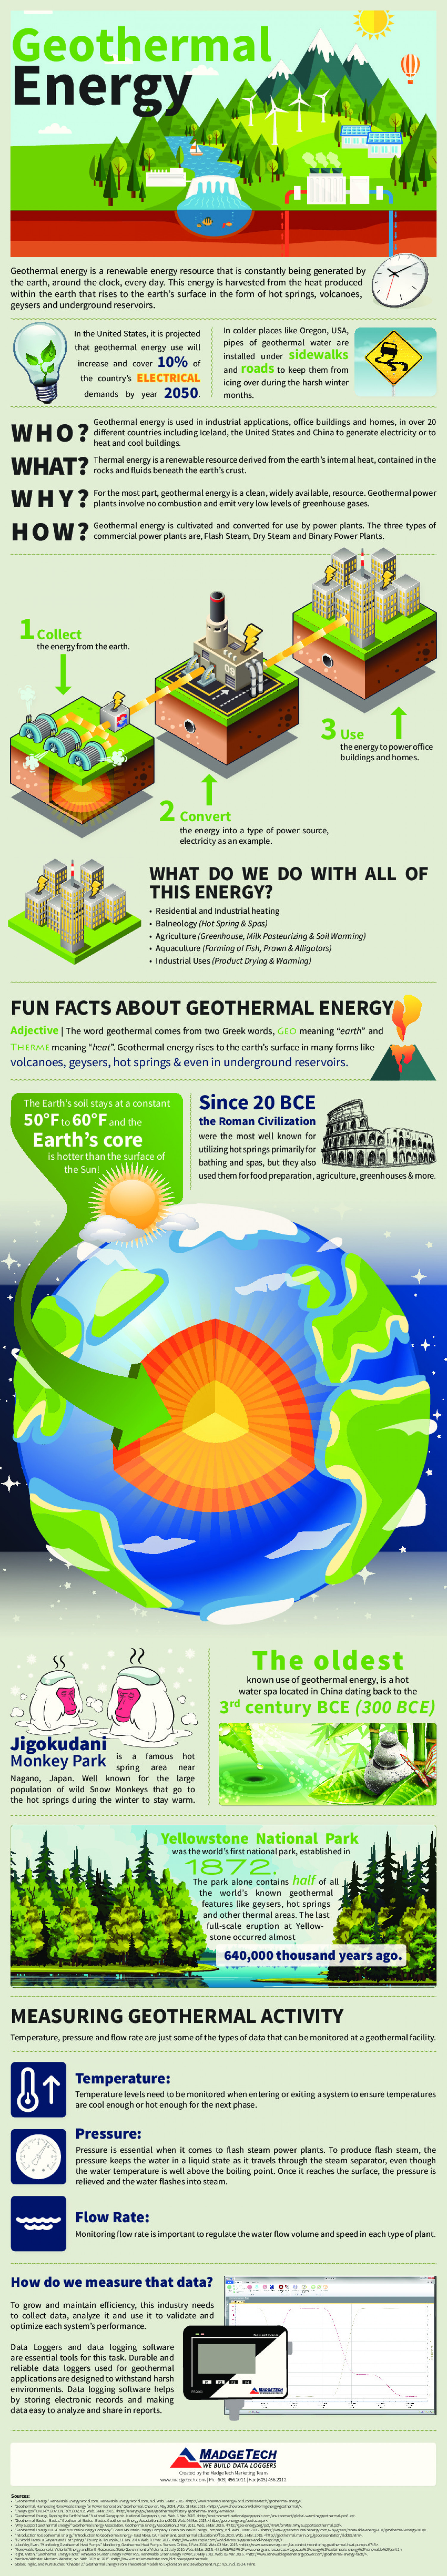 Facts and Information about Geothermal Energy | Visual.ly